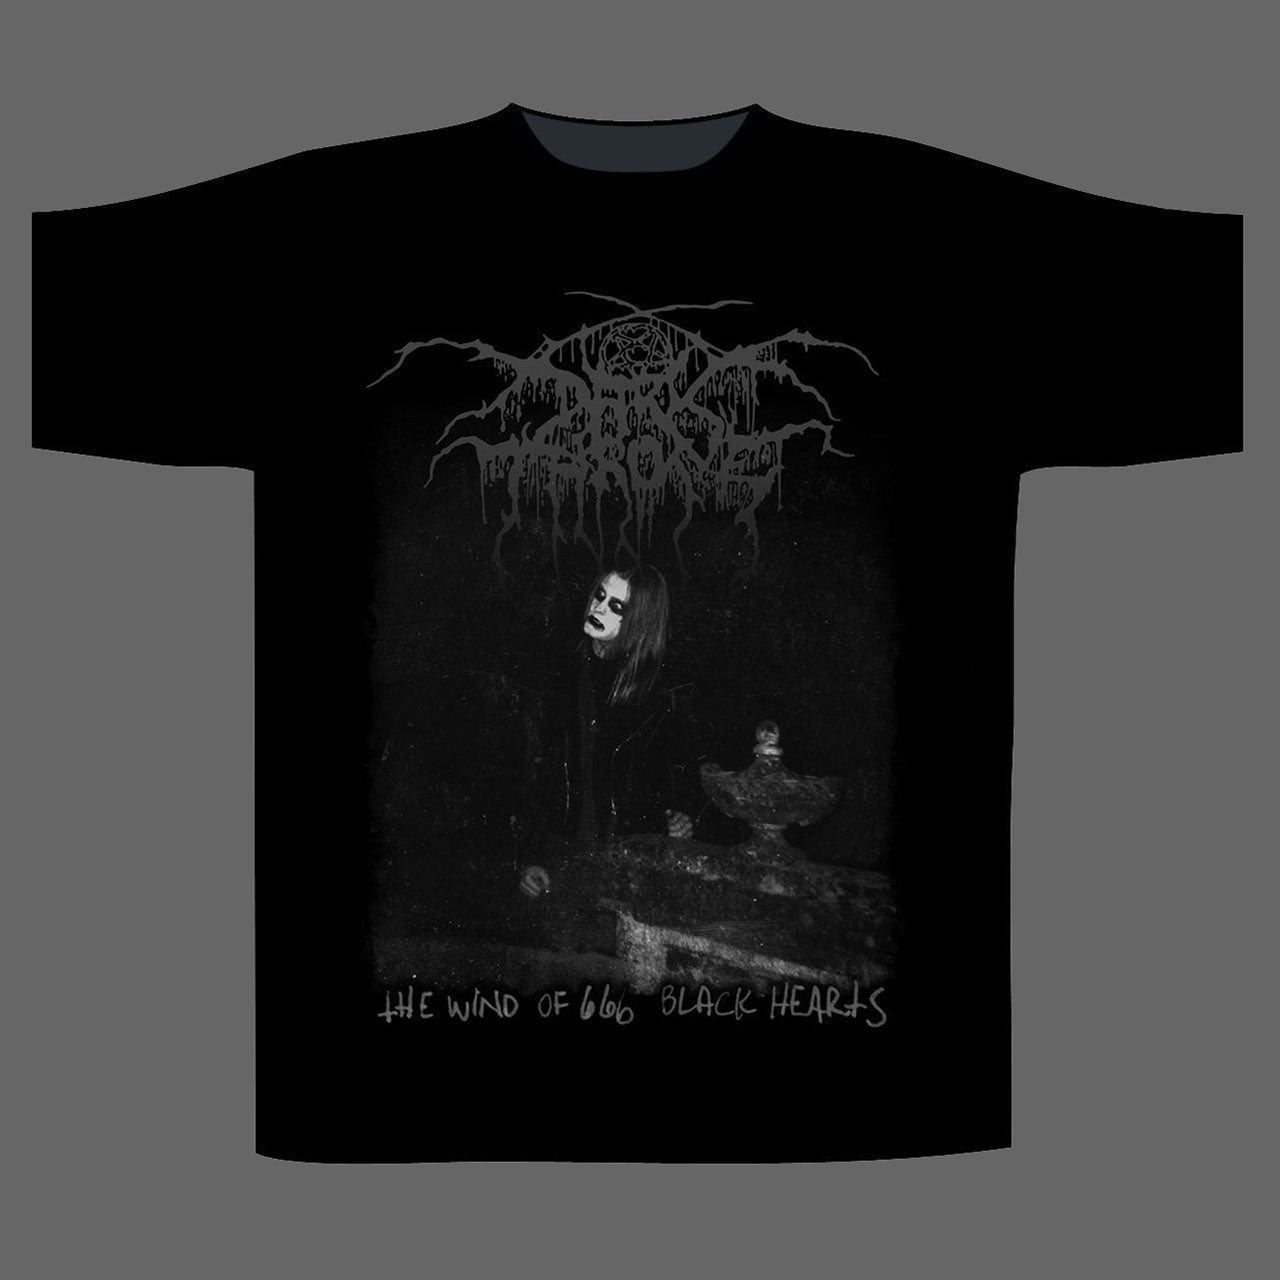 Darkthrone - The Wind of 666 Black Hearts (T-Shirt)